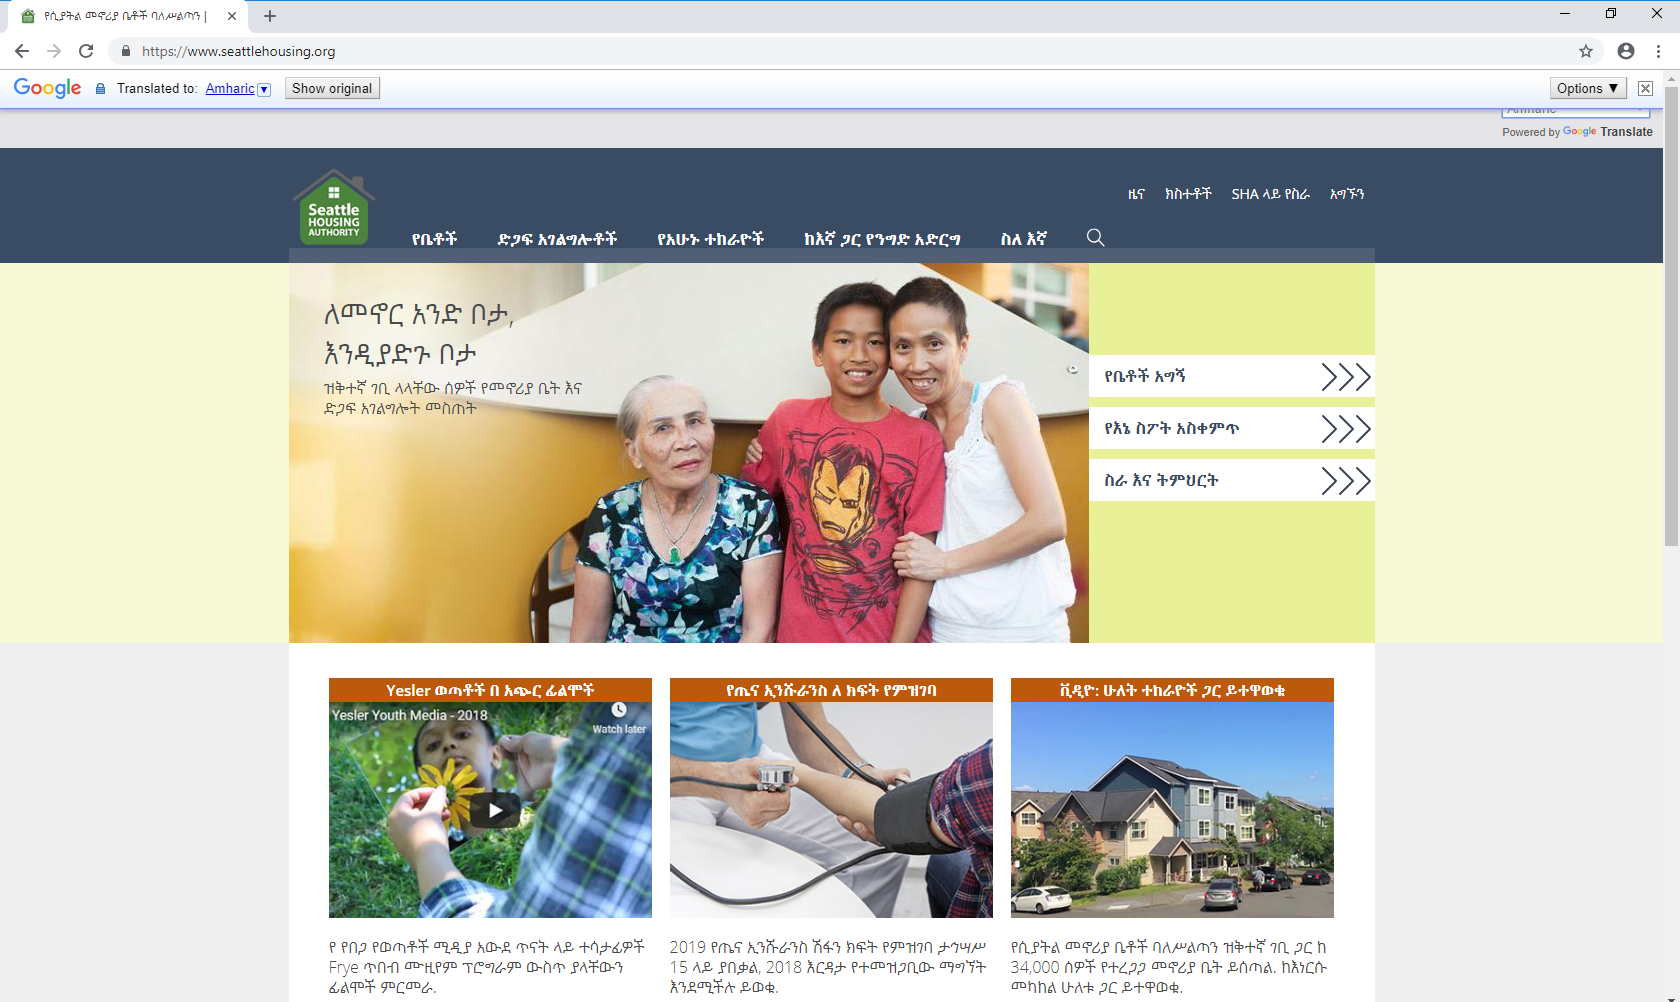 Translated home page of seattlehousing.org